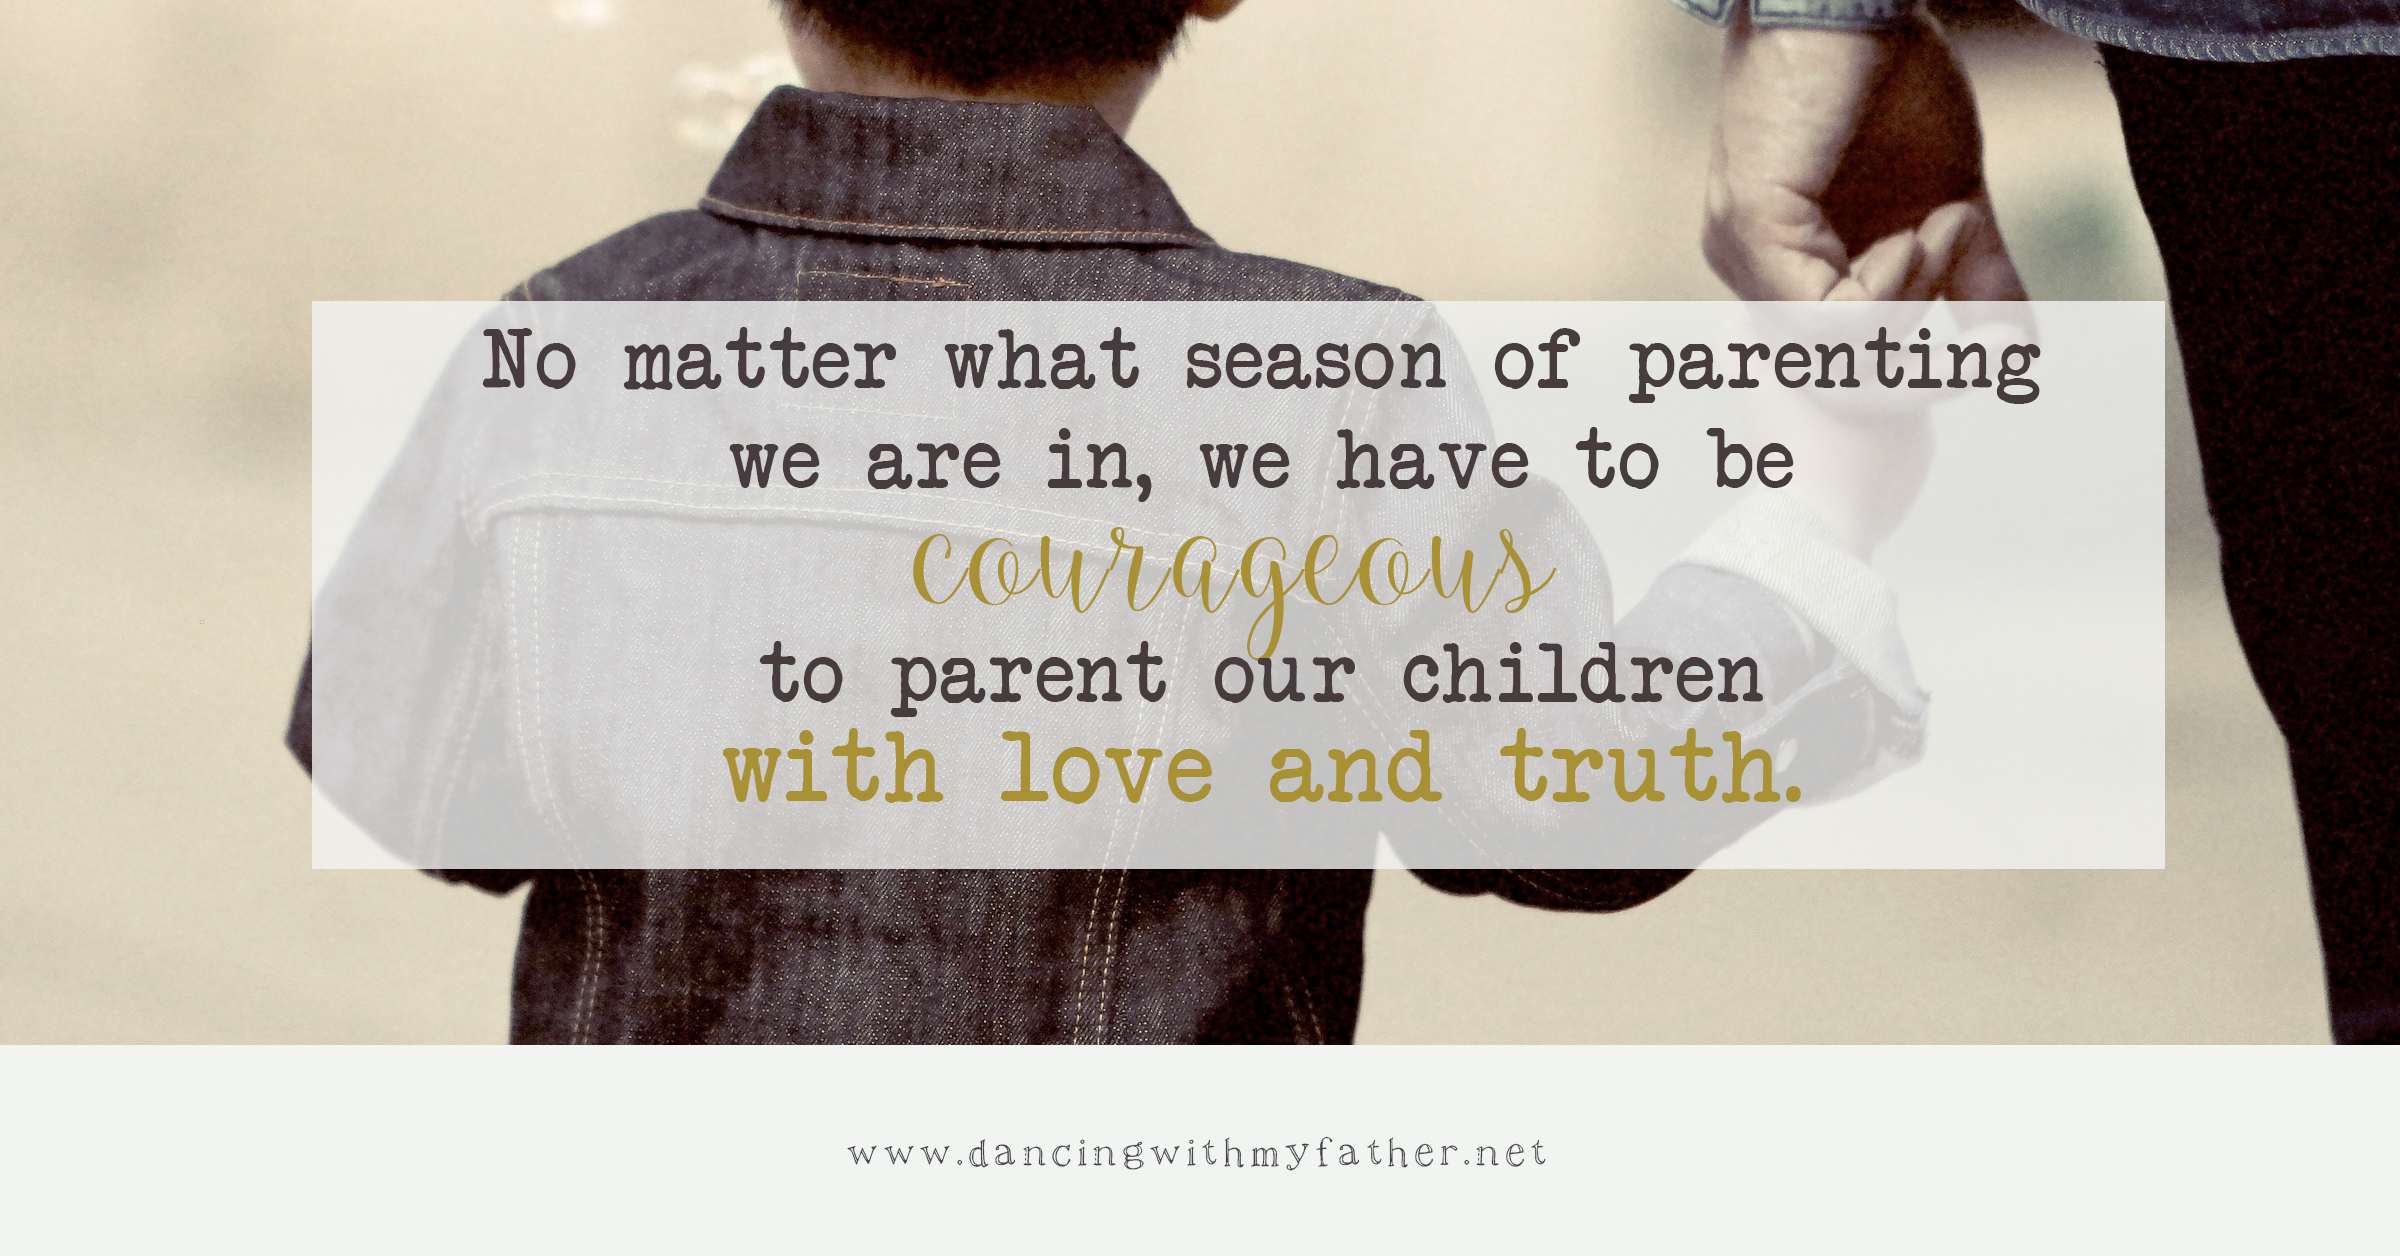 parenting-with-courage-dancing-with-my-father